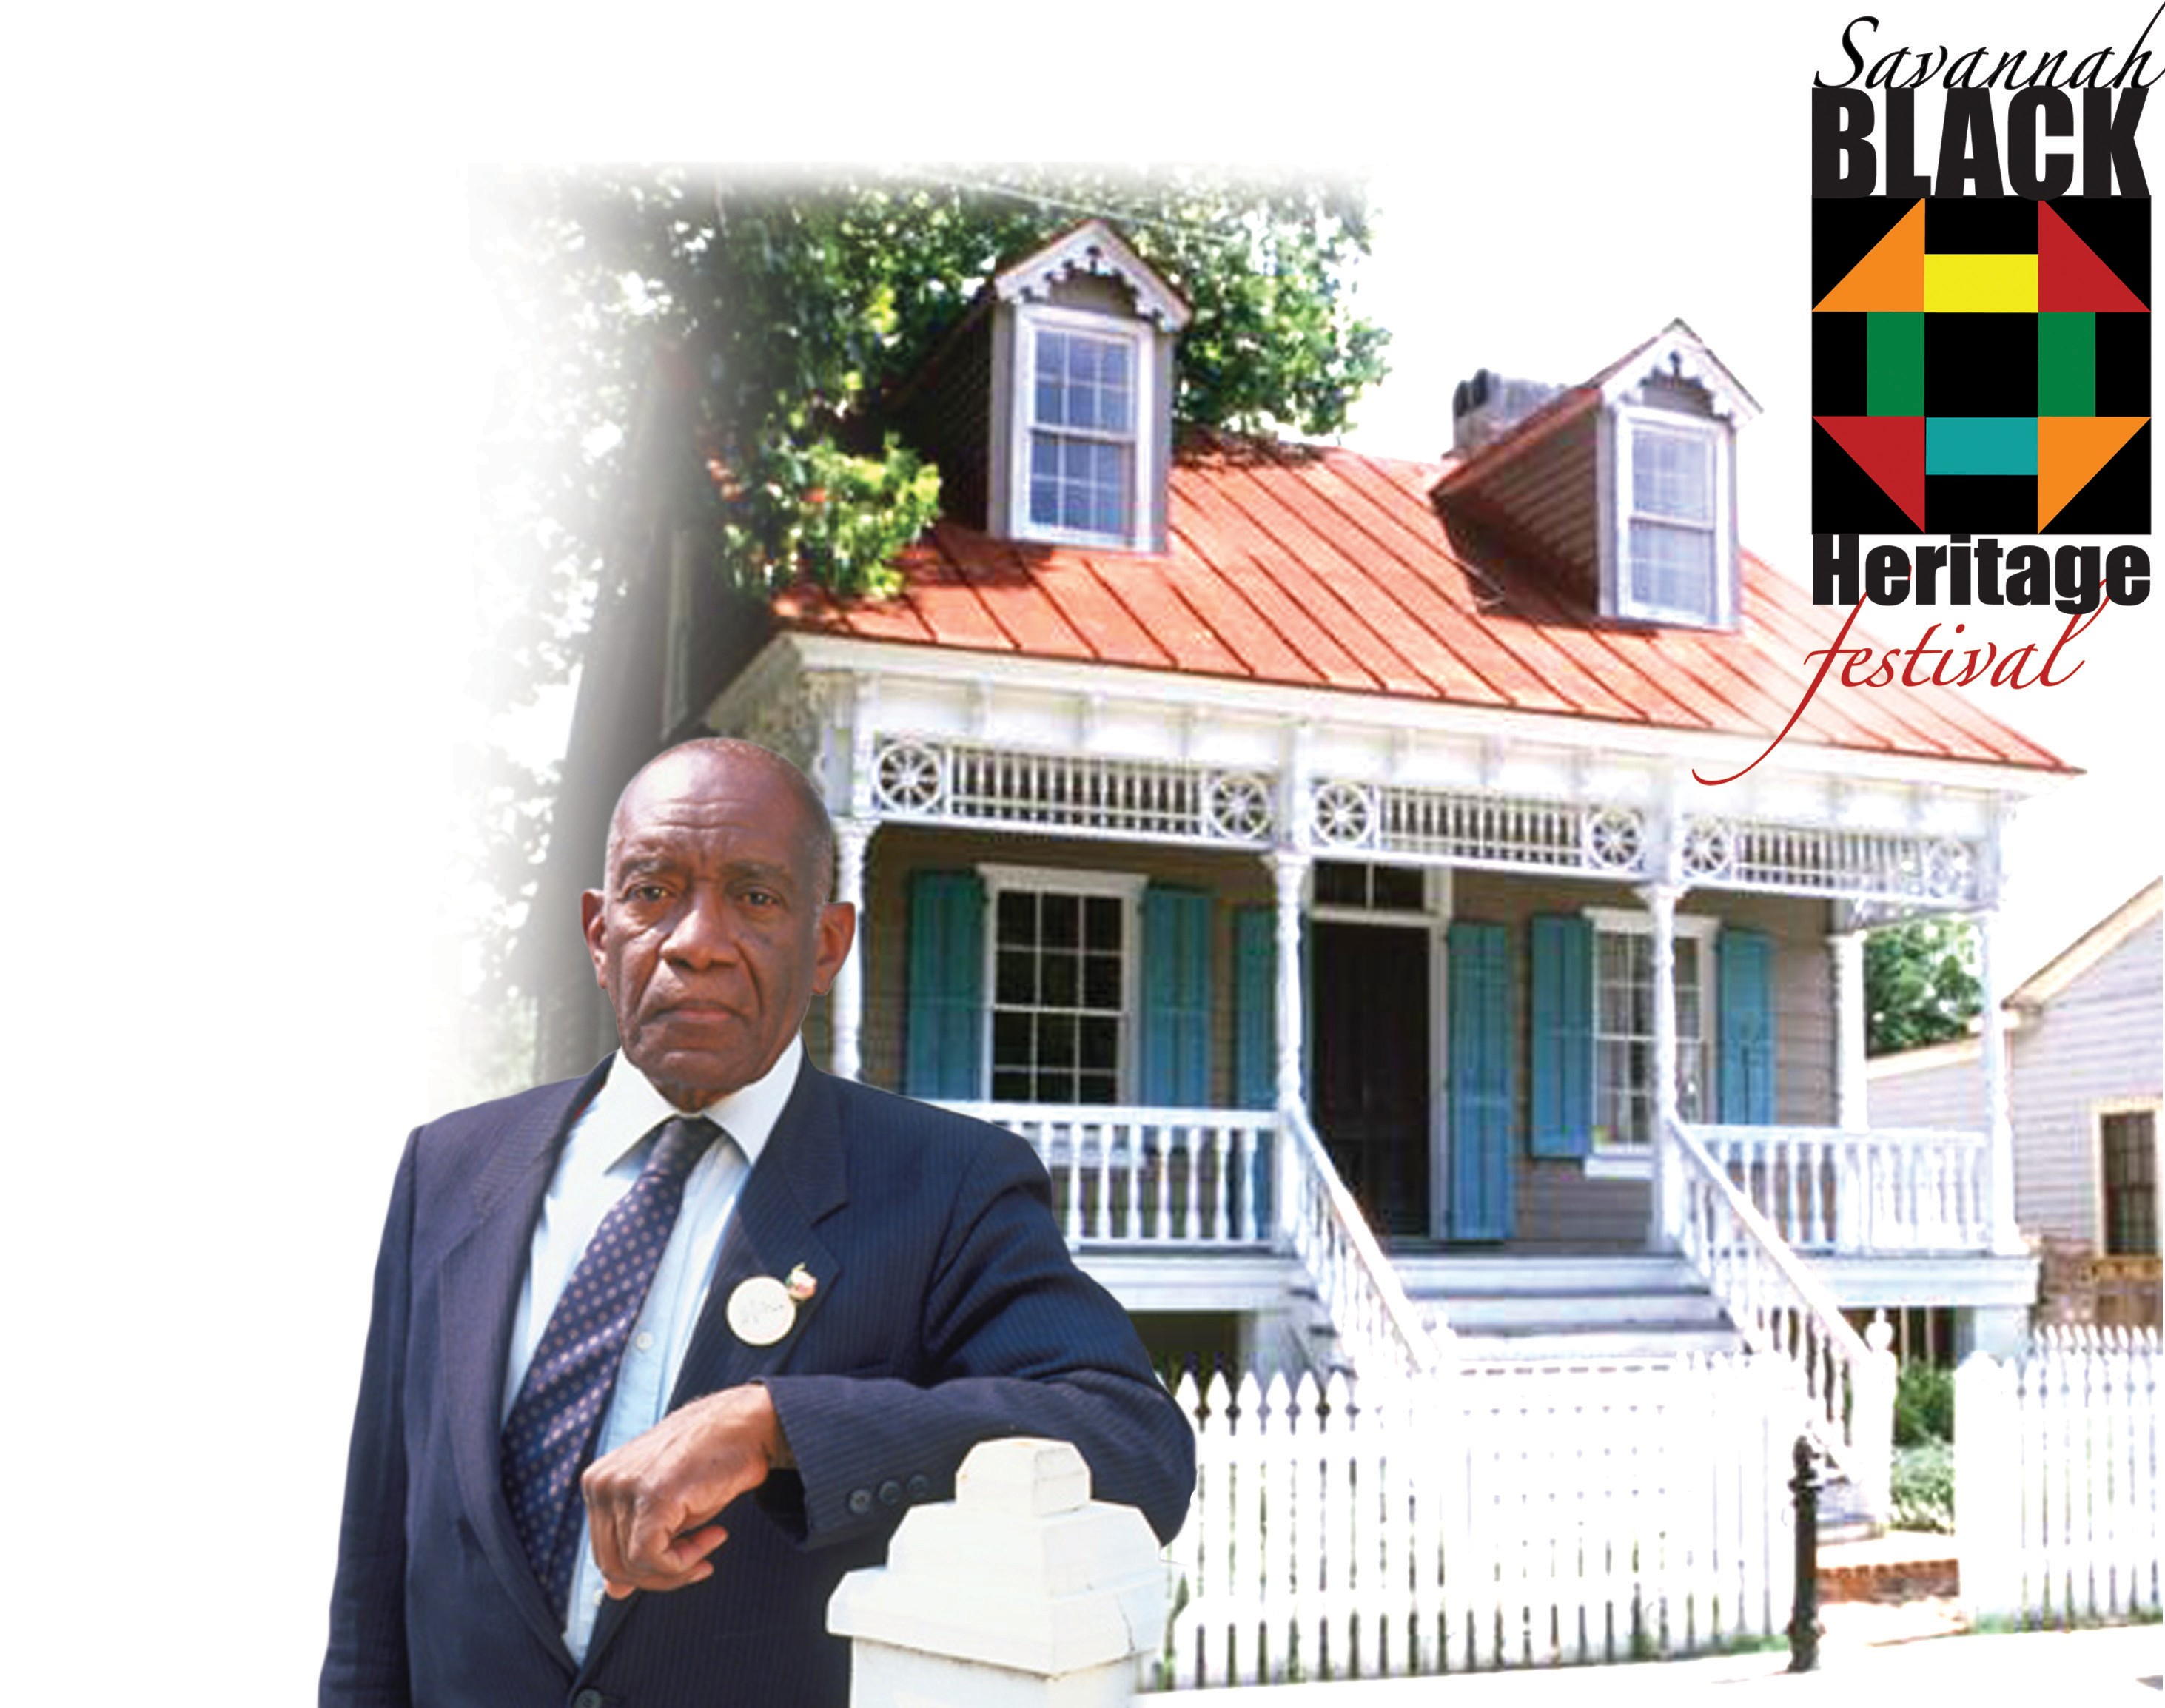 Mr. W. W. Law was the founder of the King-Tisdell Cottage Foundation and leaves as part of his legacy The King-Tisdell Cottage and the Beach Institute African Cultural Center.